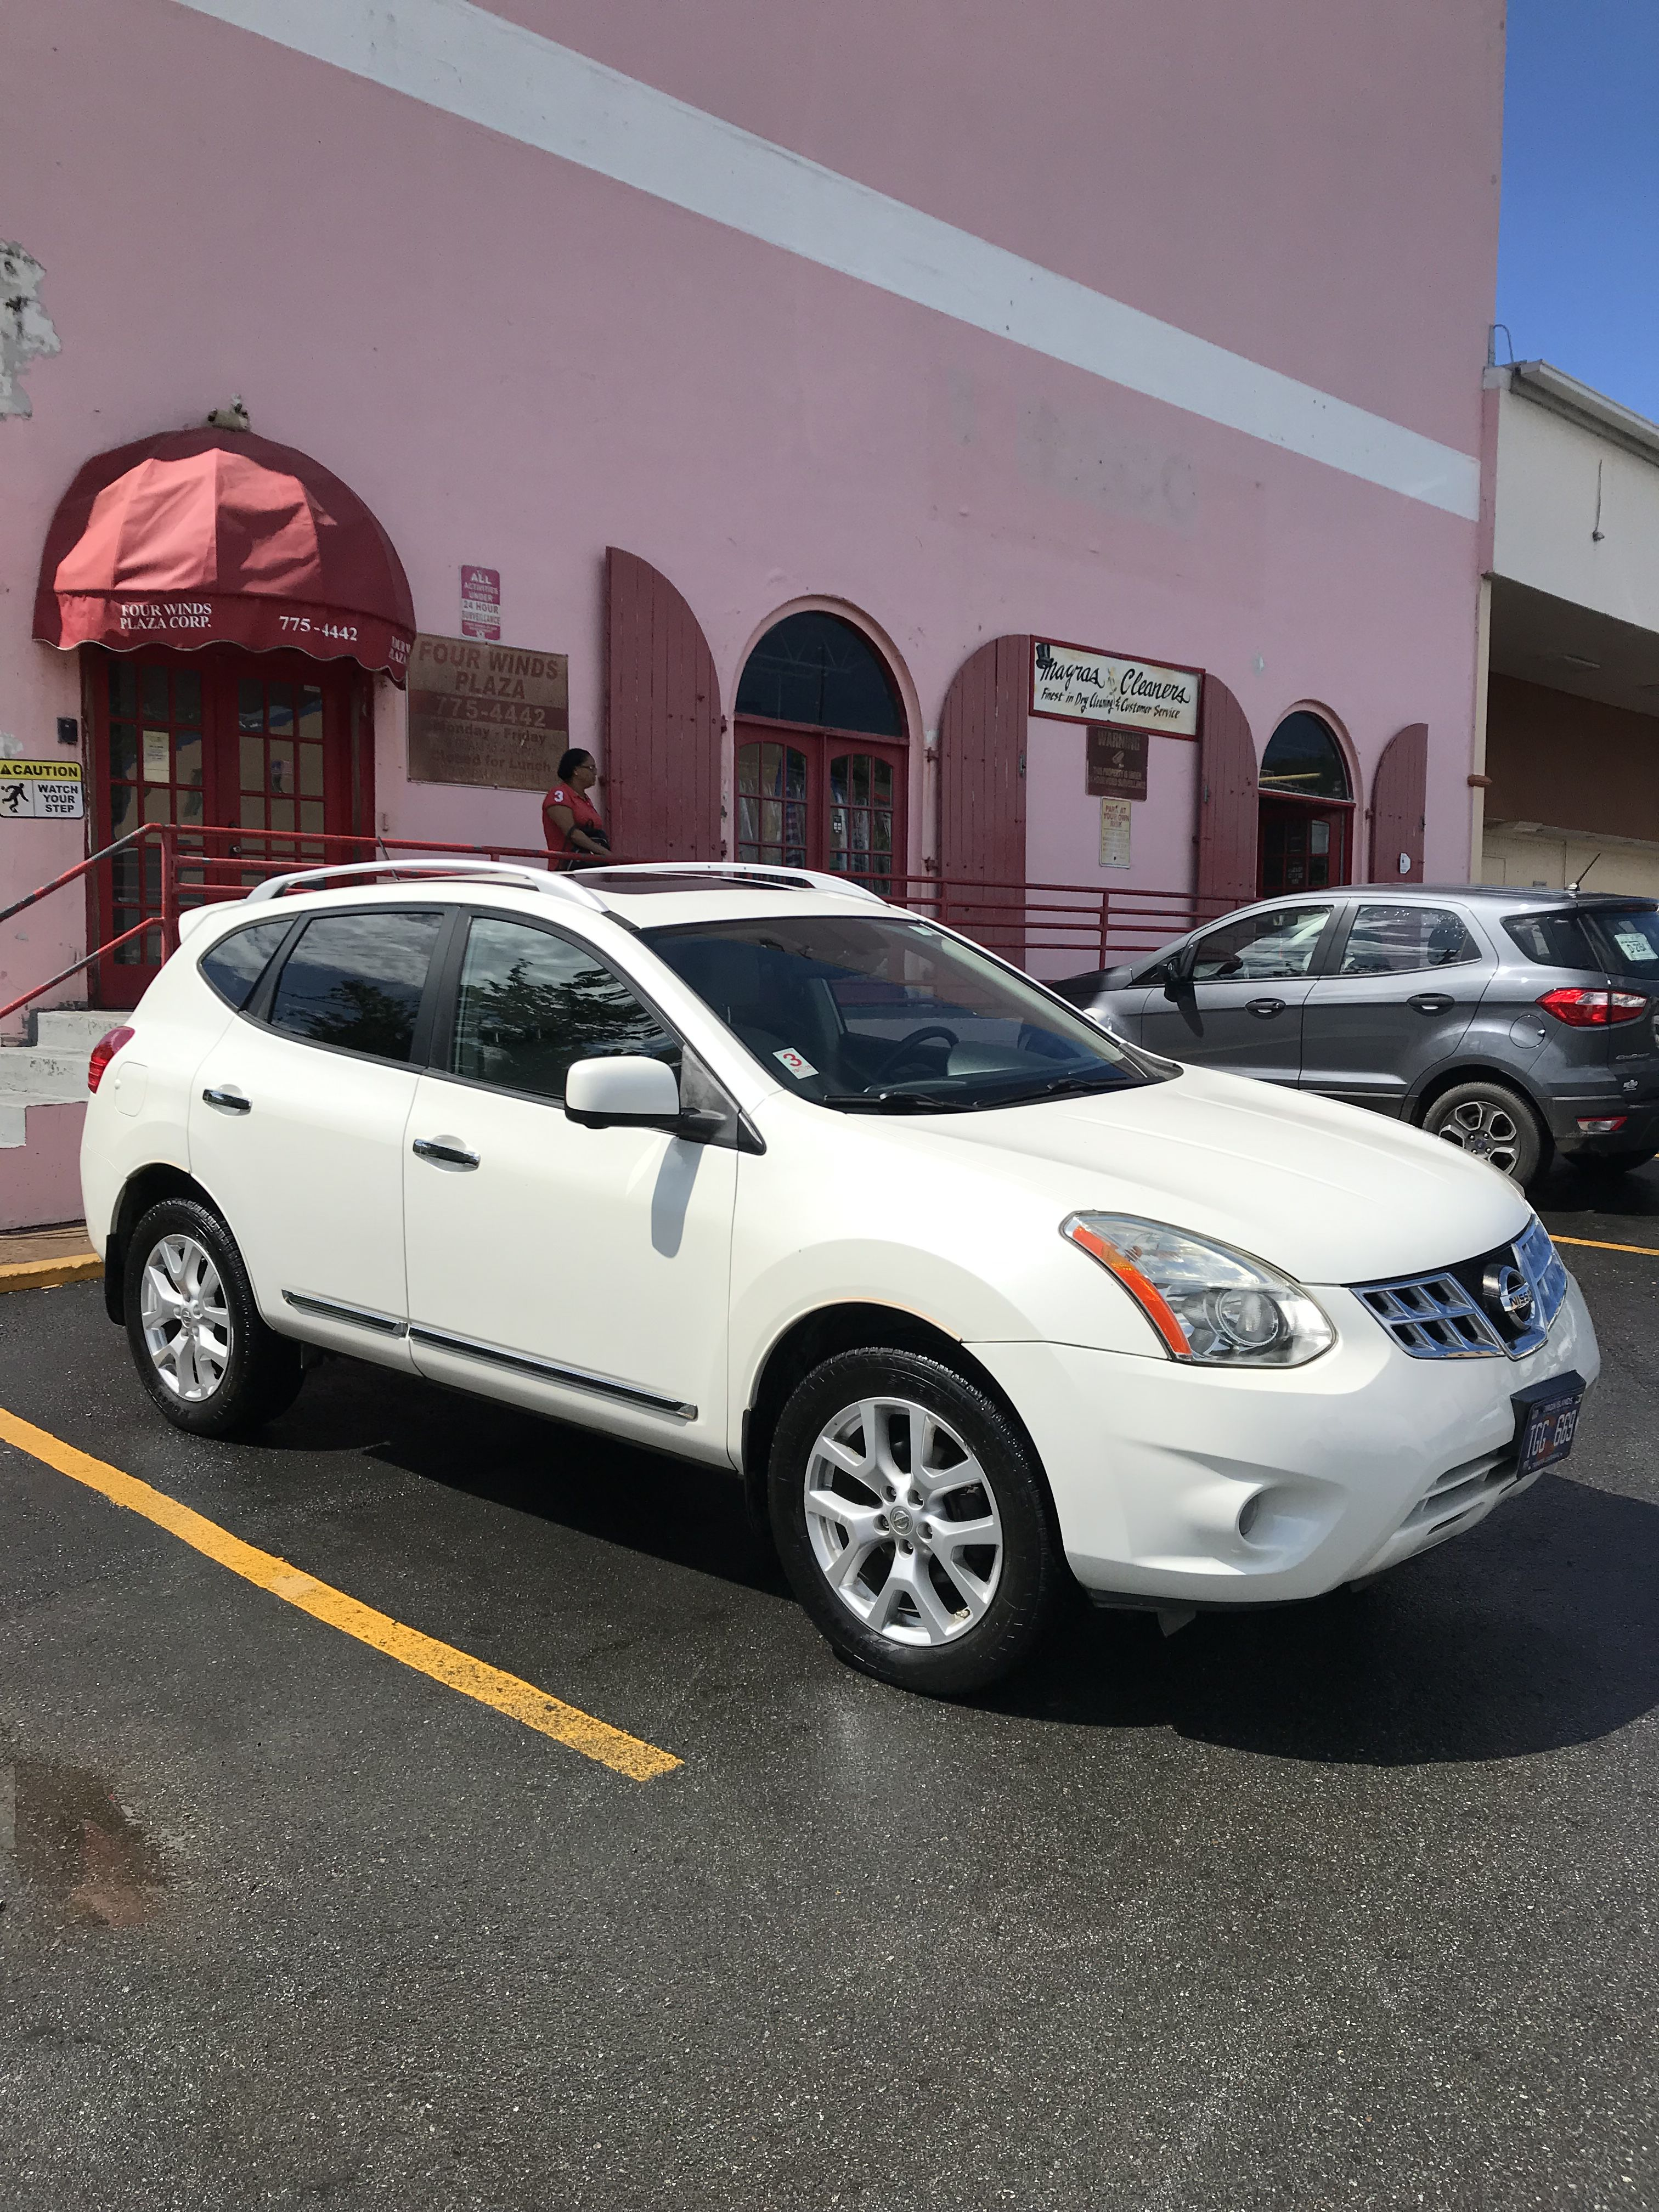 Nissan Rogue for sale image 1